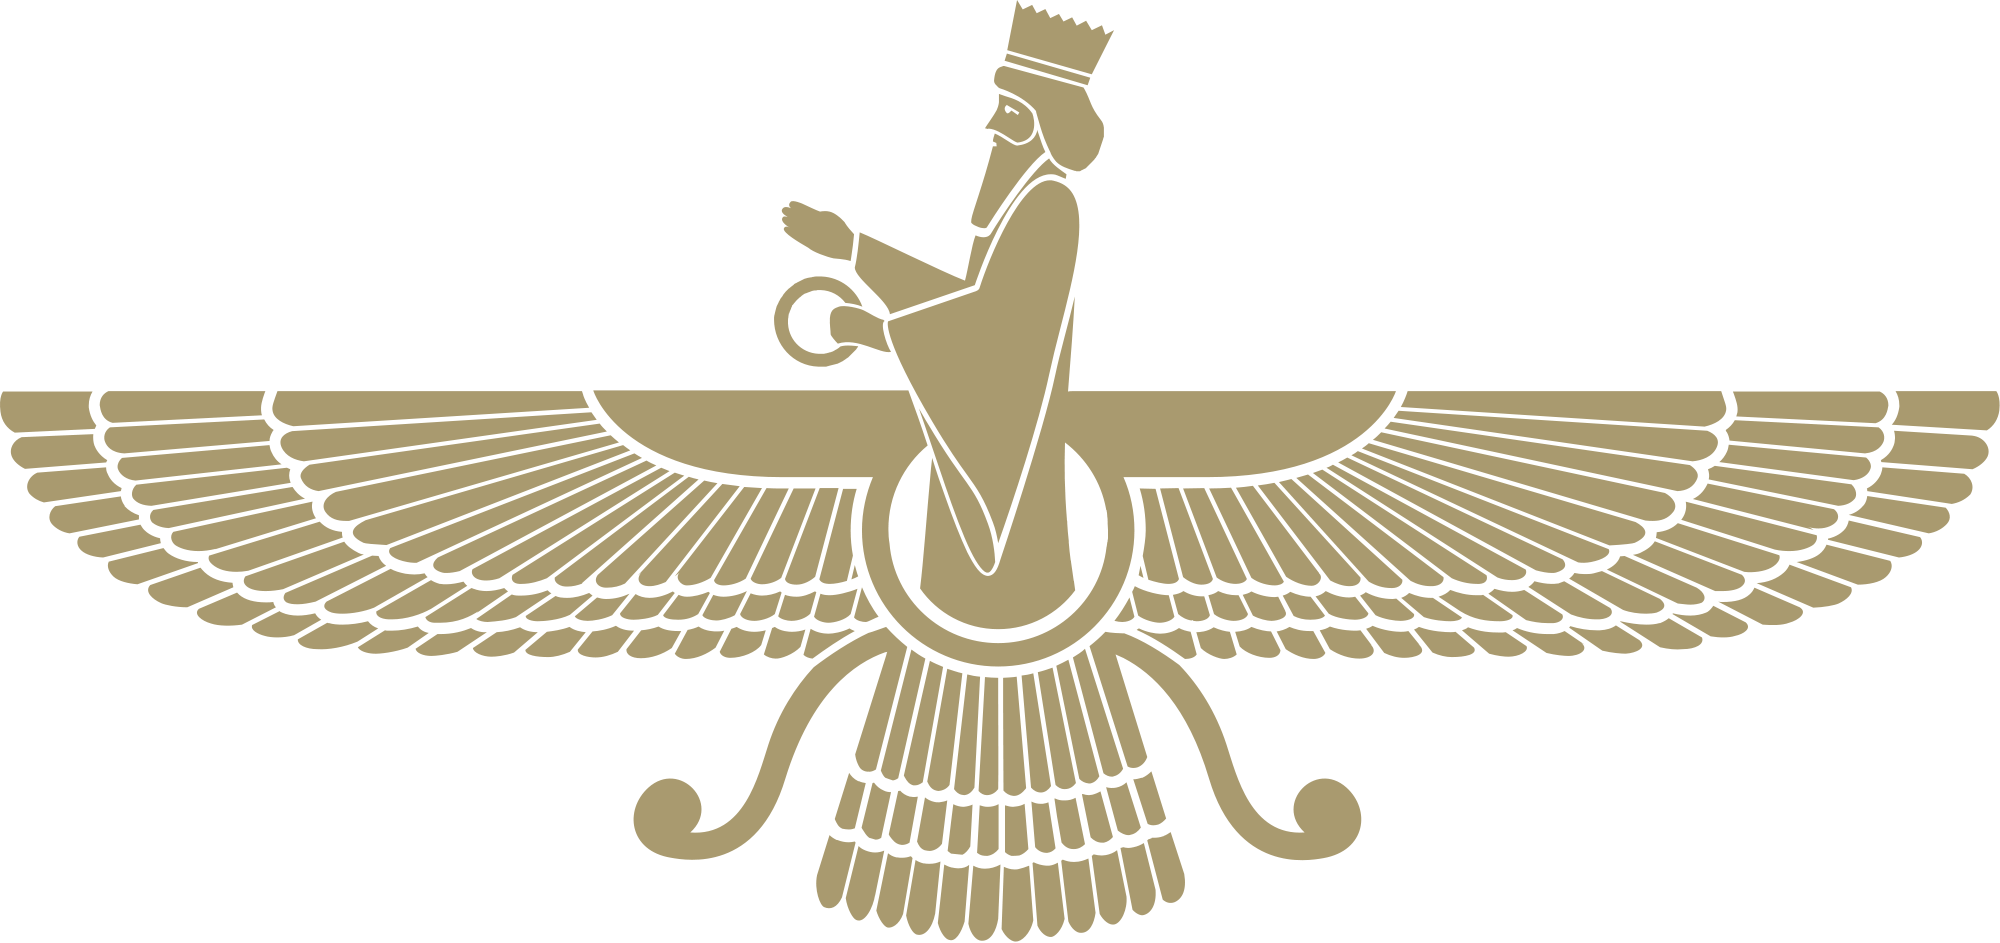 Persian pahlavi crown clipart picture free library Zoroastrianism is one of the world's oldest and most influential ... picture free library